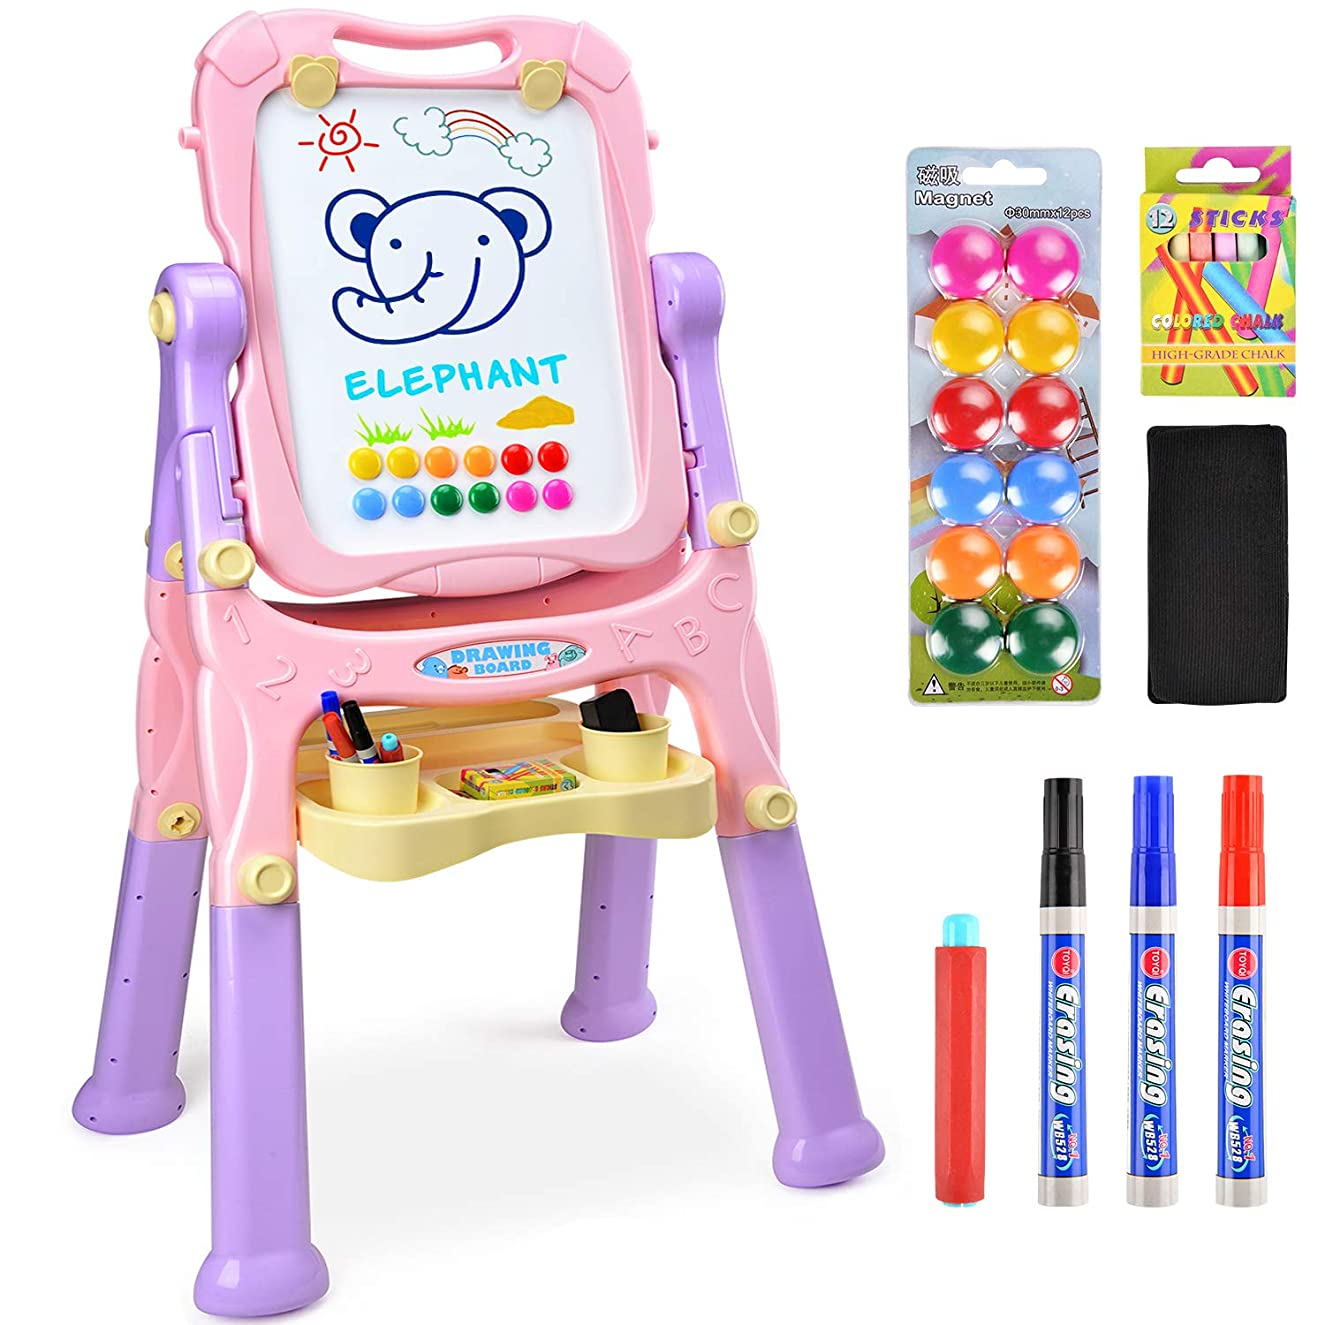 Amagoing Magnetic Easel for Kids, 4 in 1 Multifunctional Standing Art Easel Double Sided Quick Flip & Height Adjustable Drawing Board with Paper Clips